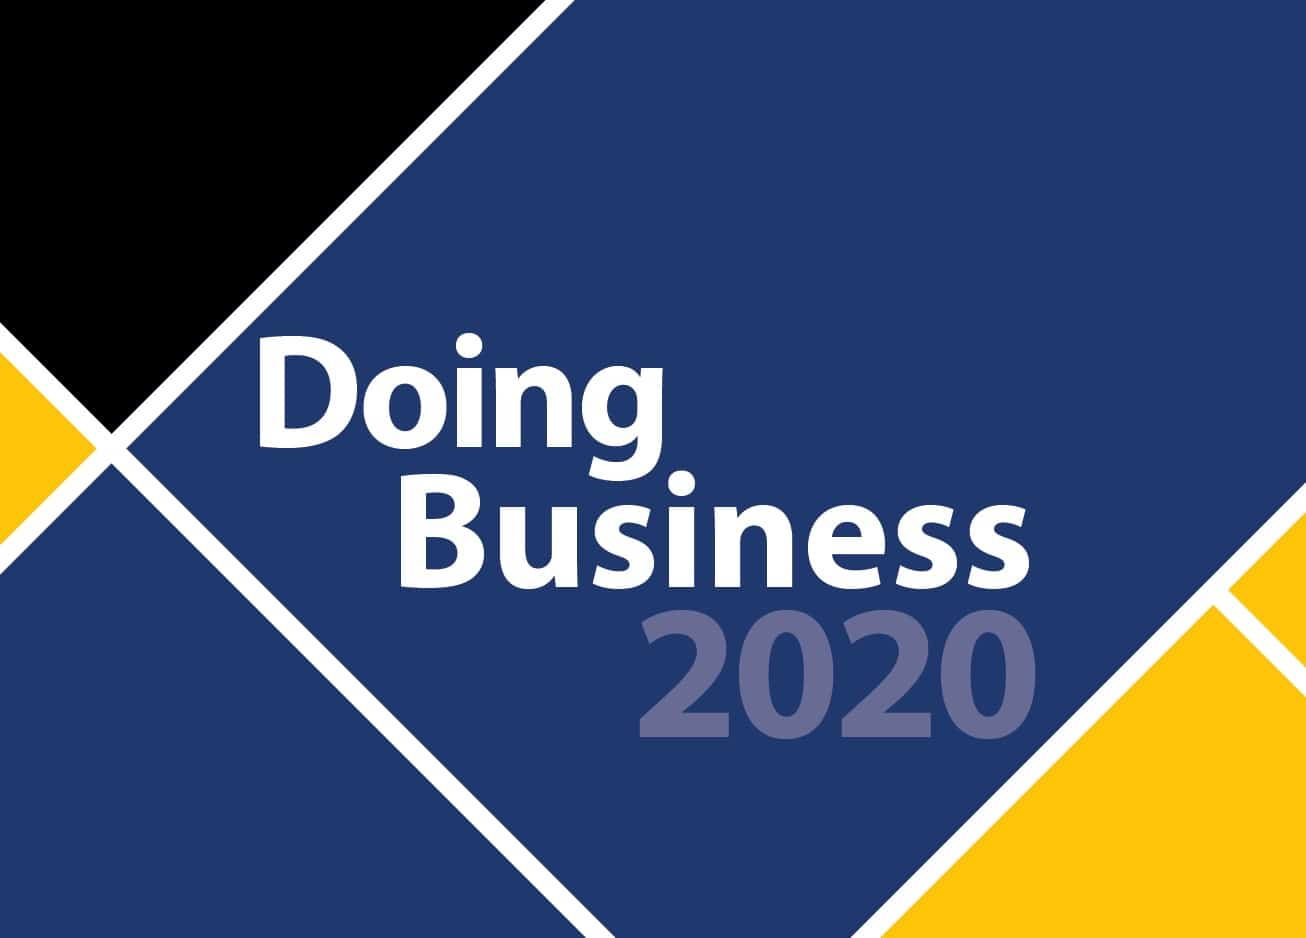 doing-business-2020